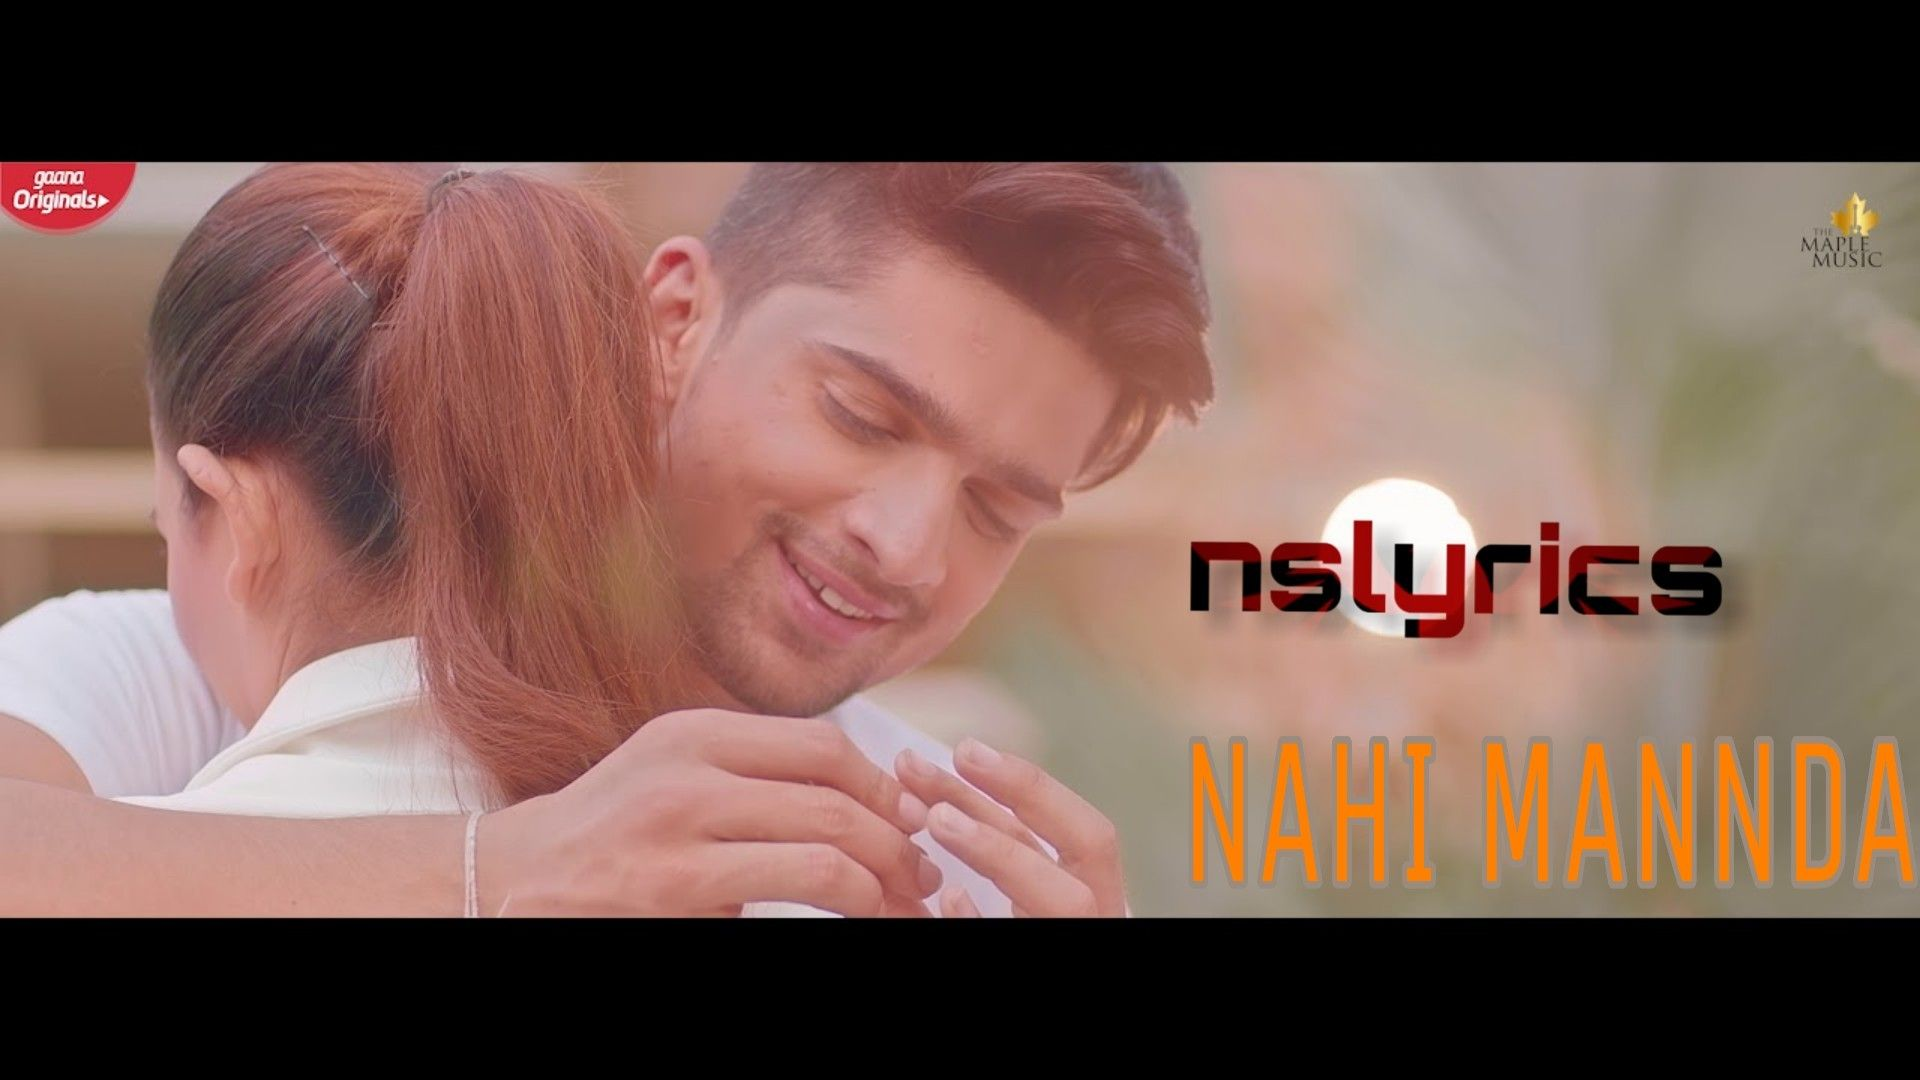 Nahi Mannda Song Singer B Kainth Lyrics Shamshad Music Shamshad Di 2020 Lirik Lirik Lagu Video